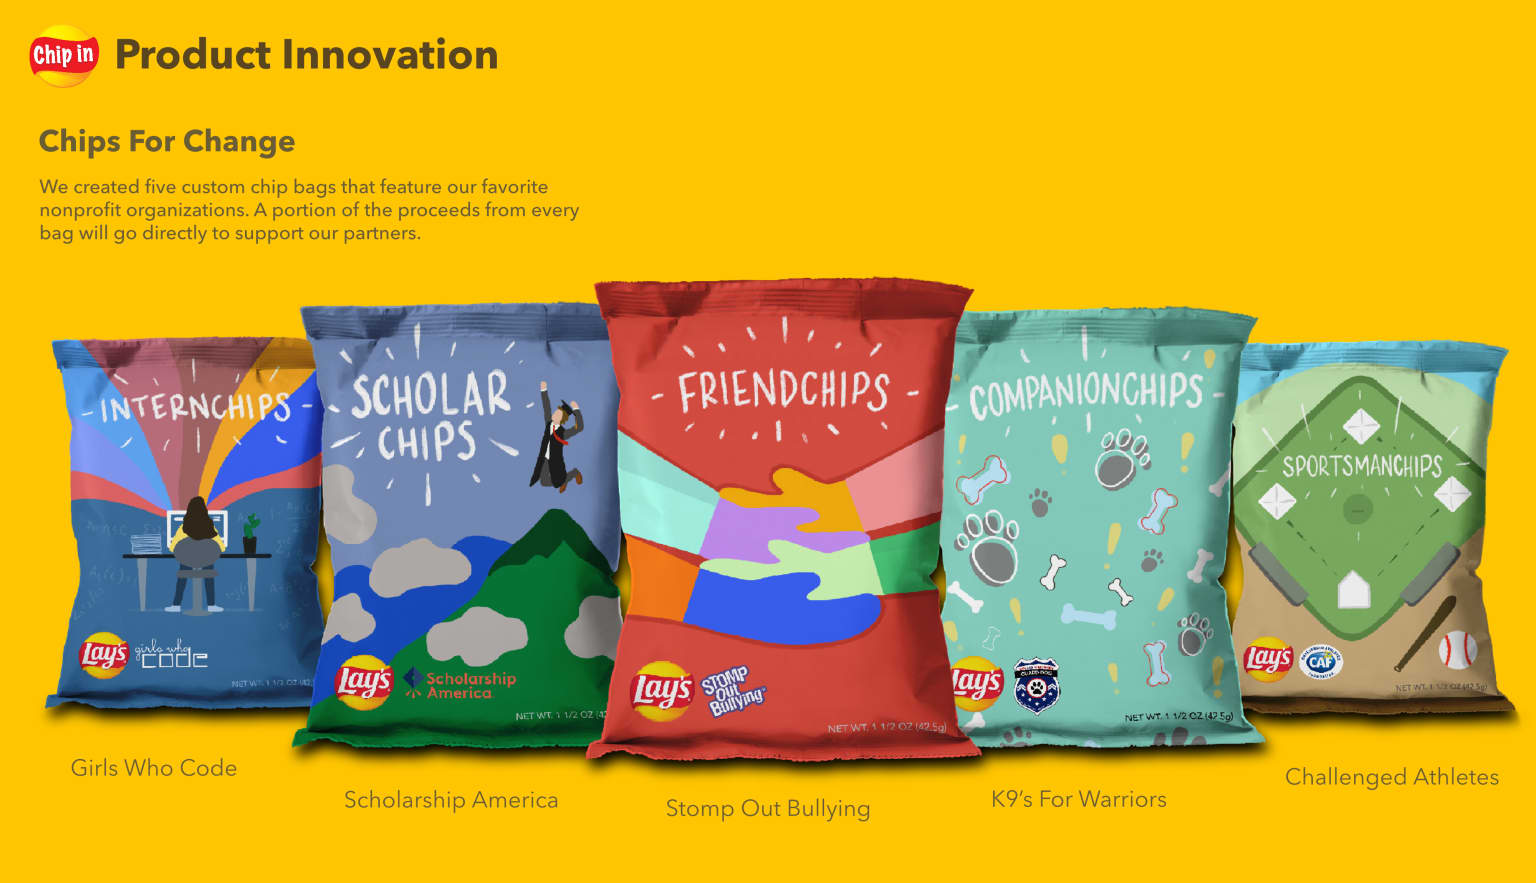 LAYS - Chip in